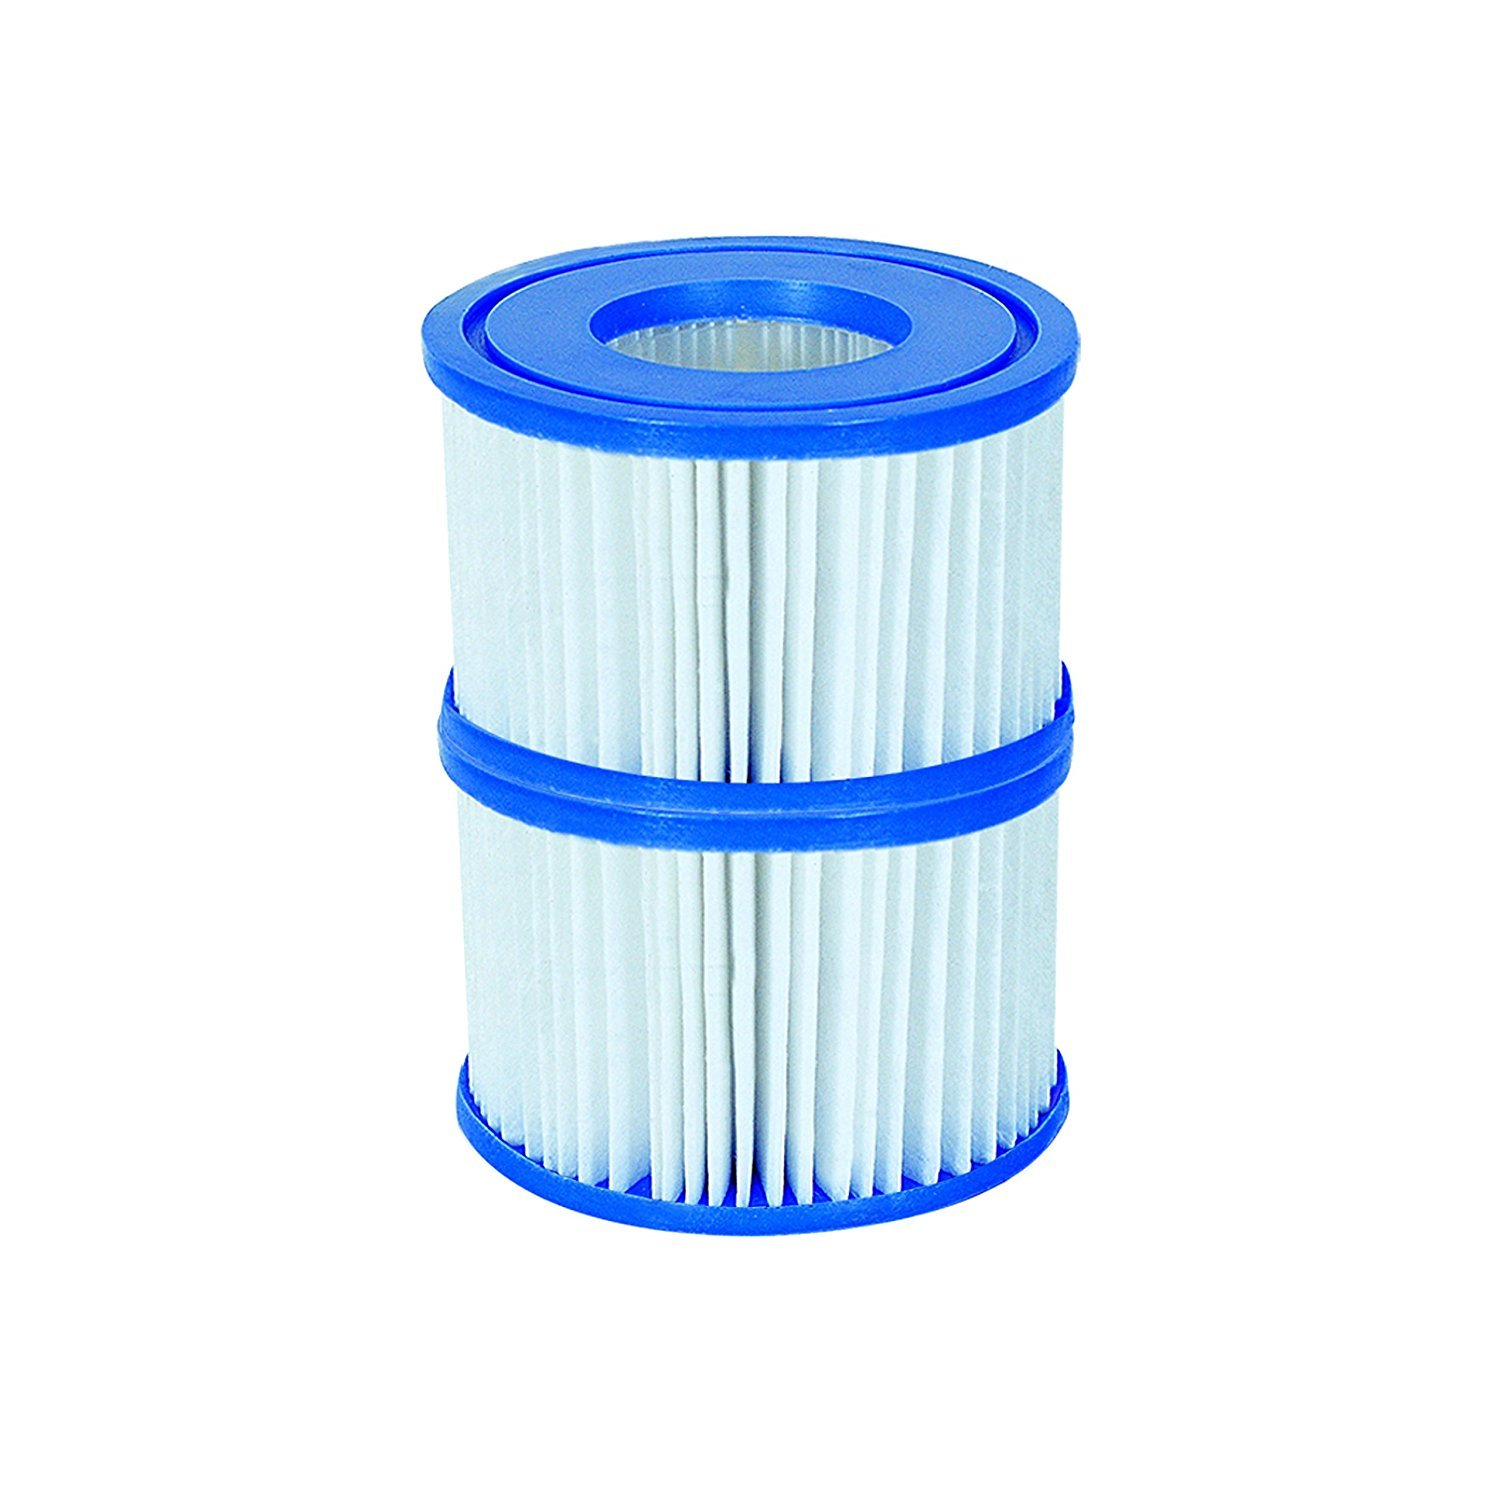 Bestway Filter Cartridge VI for Lay-Z-Spa Miami, Vegas, Monaco 12 x Twin Pack